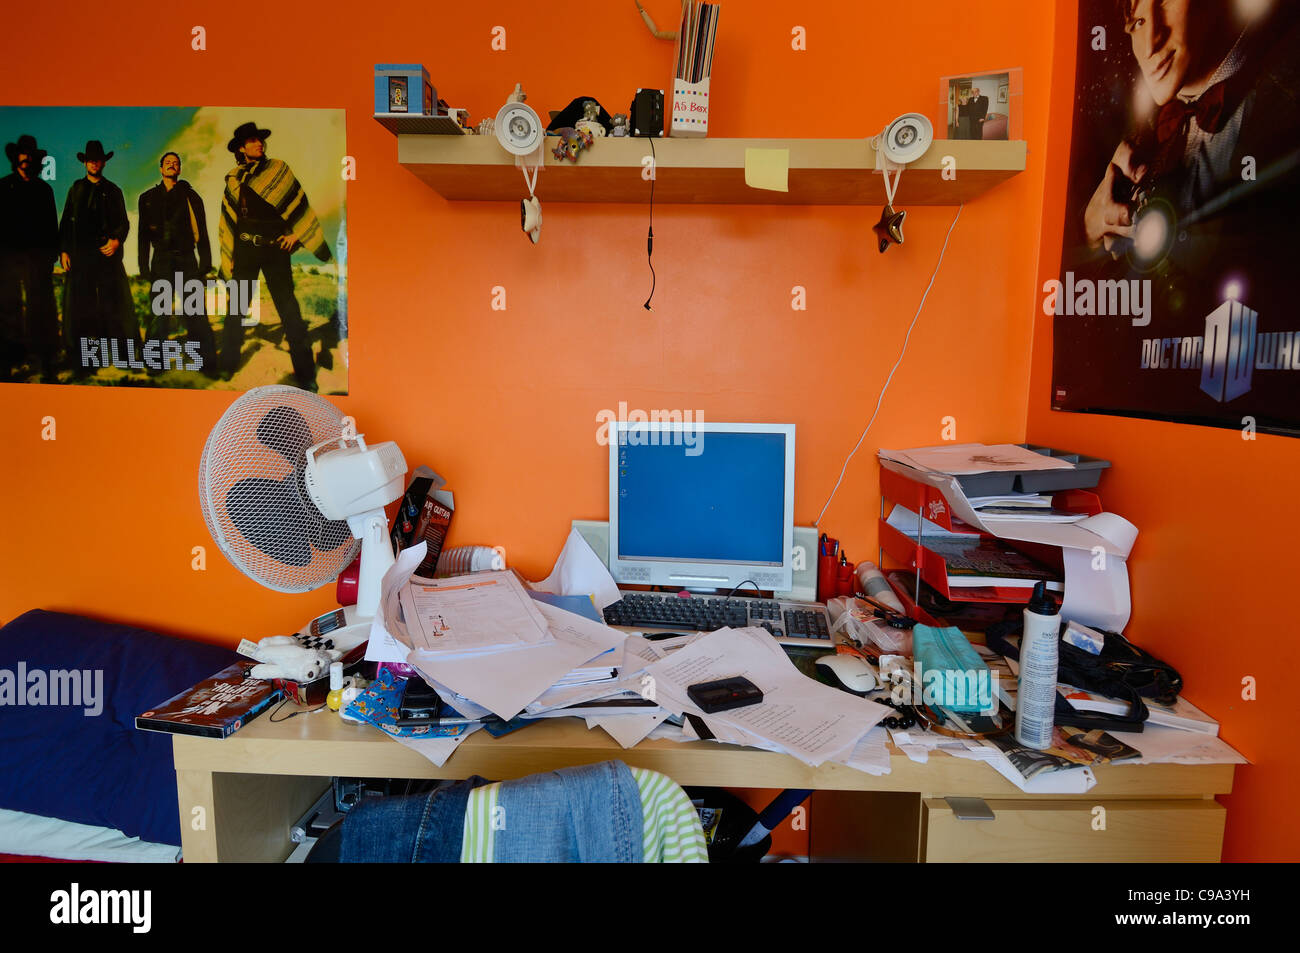 An untidy desk in a teenager's bedroom. - Stock Image